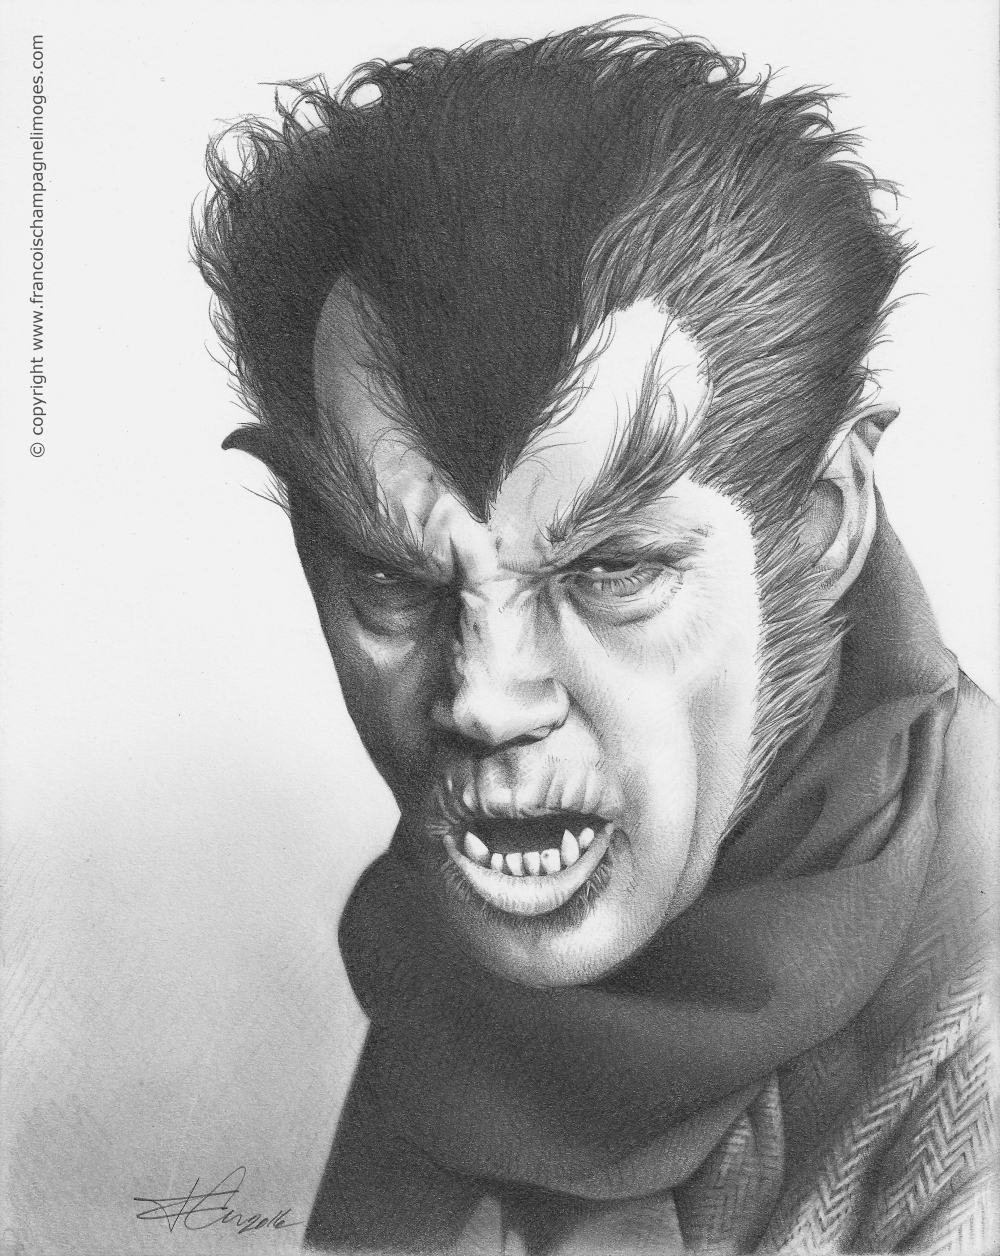 werewolf_of_london_600dpi_darker_w_copyright